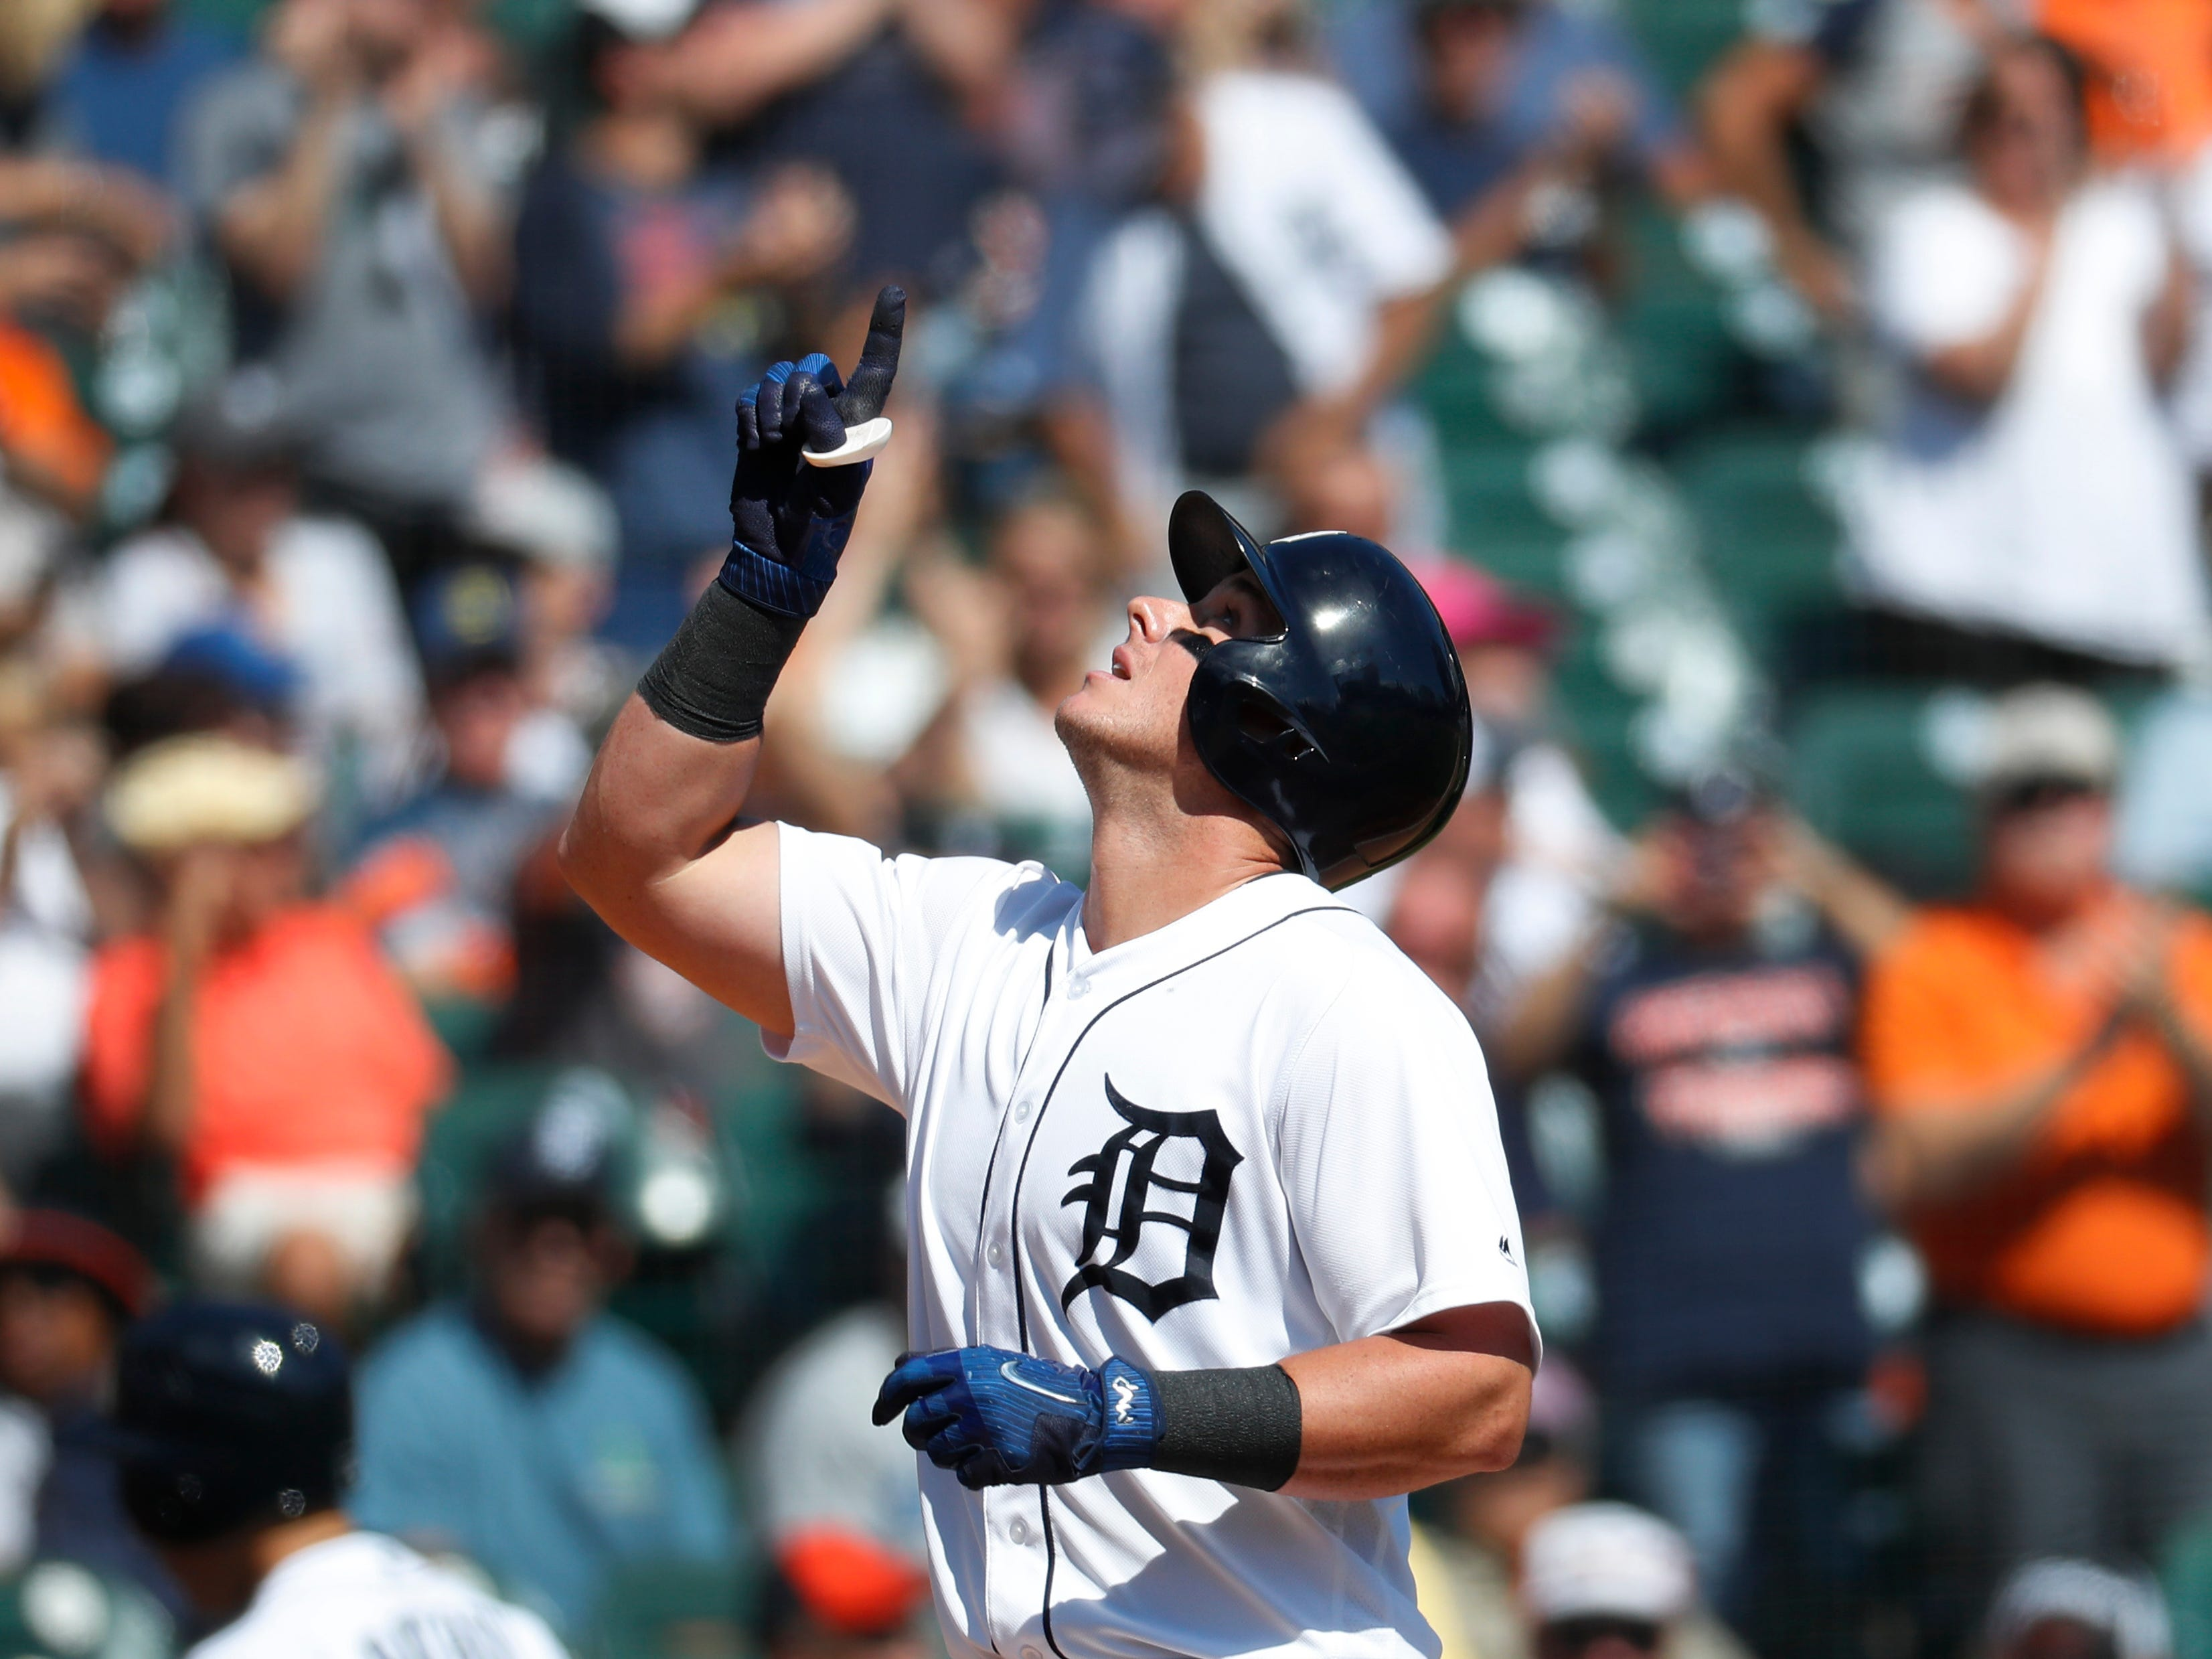 Detroit Tigers' James McCann celebrates his solo home run in the fourth inning.